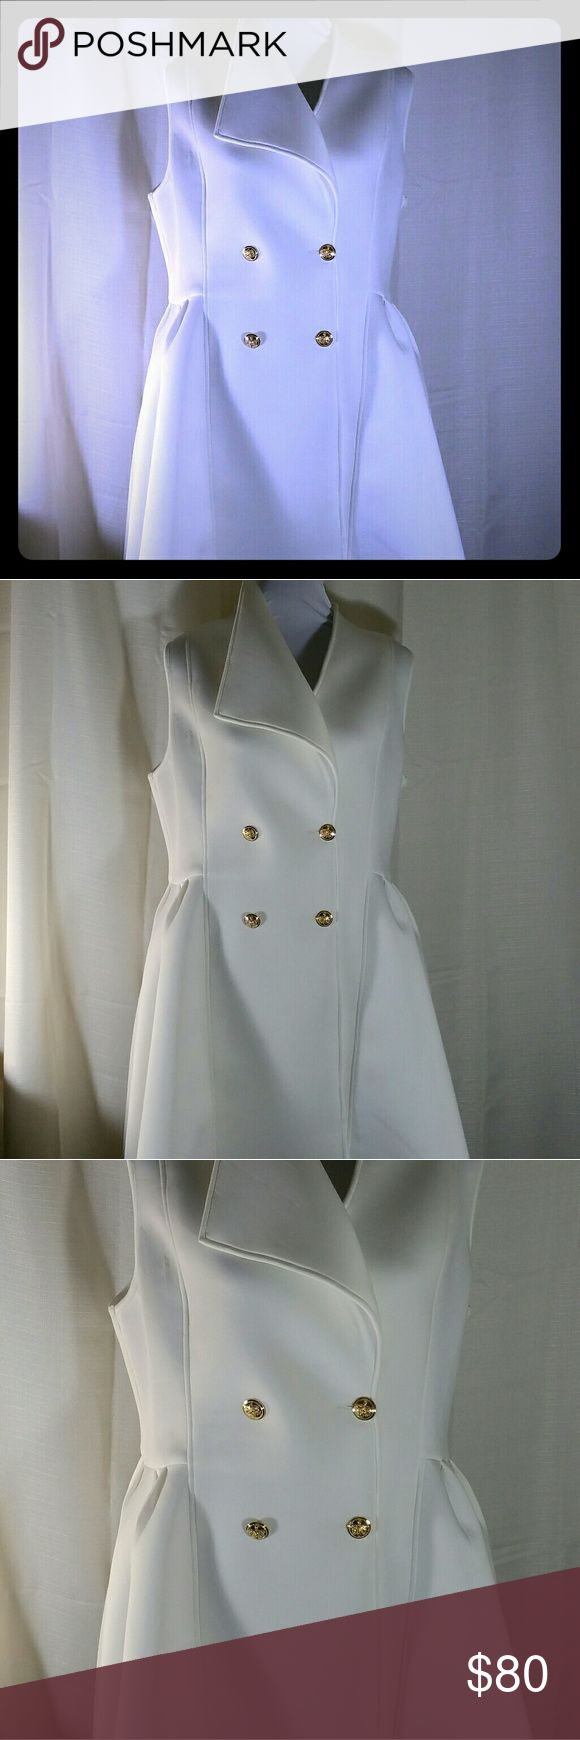 Tuxedo Dress NWOT Tuxedo Dress  Color - Ivory Size - 2XL Approx. Dimensions - front length = 56.5 in, back length (from neck) = 32 in Replacement button included  Elegant Tuxedo style dress that flatters any body type. The dress is adorned with gold buttons, a tuxedo split tail, and a one flap collar. This dress demands attention when you enter the room. This tuxedo dress is great for any occasion; a night out or even a wedding. Dresses